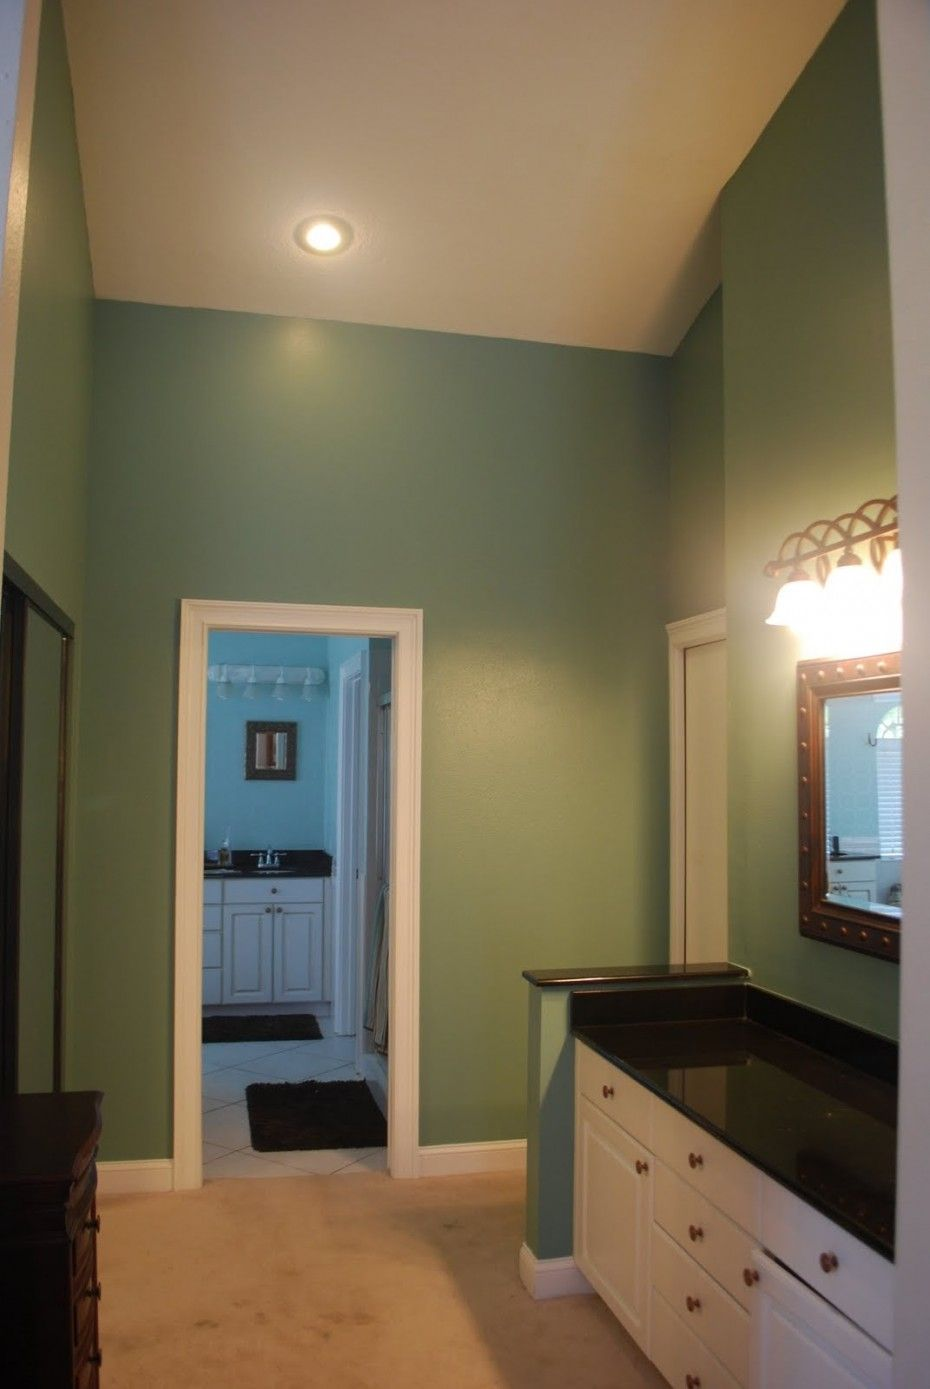 Bathroom paint colors ideas warm green bathroom painting for Small bathroom paint colors